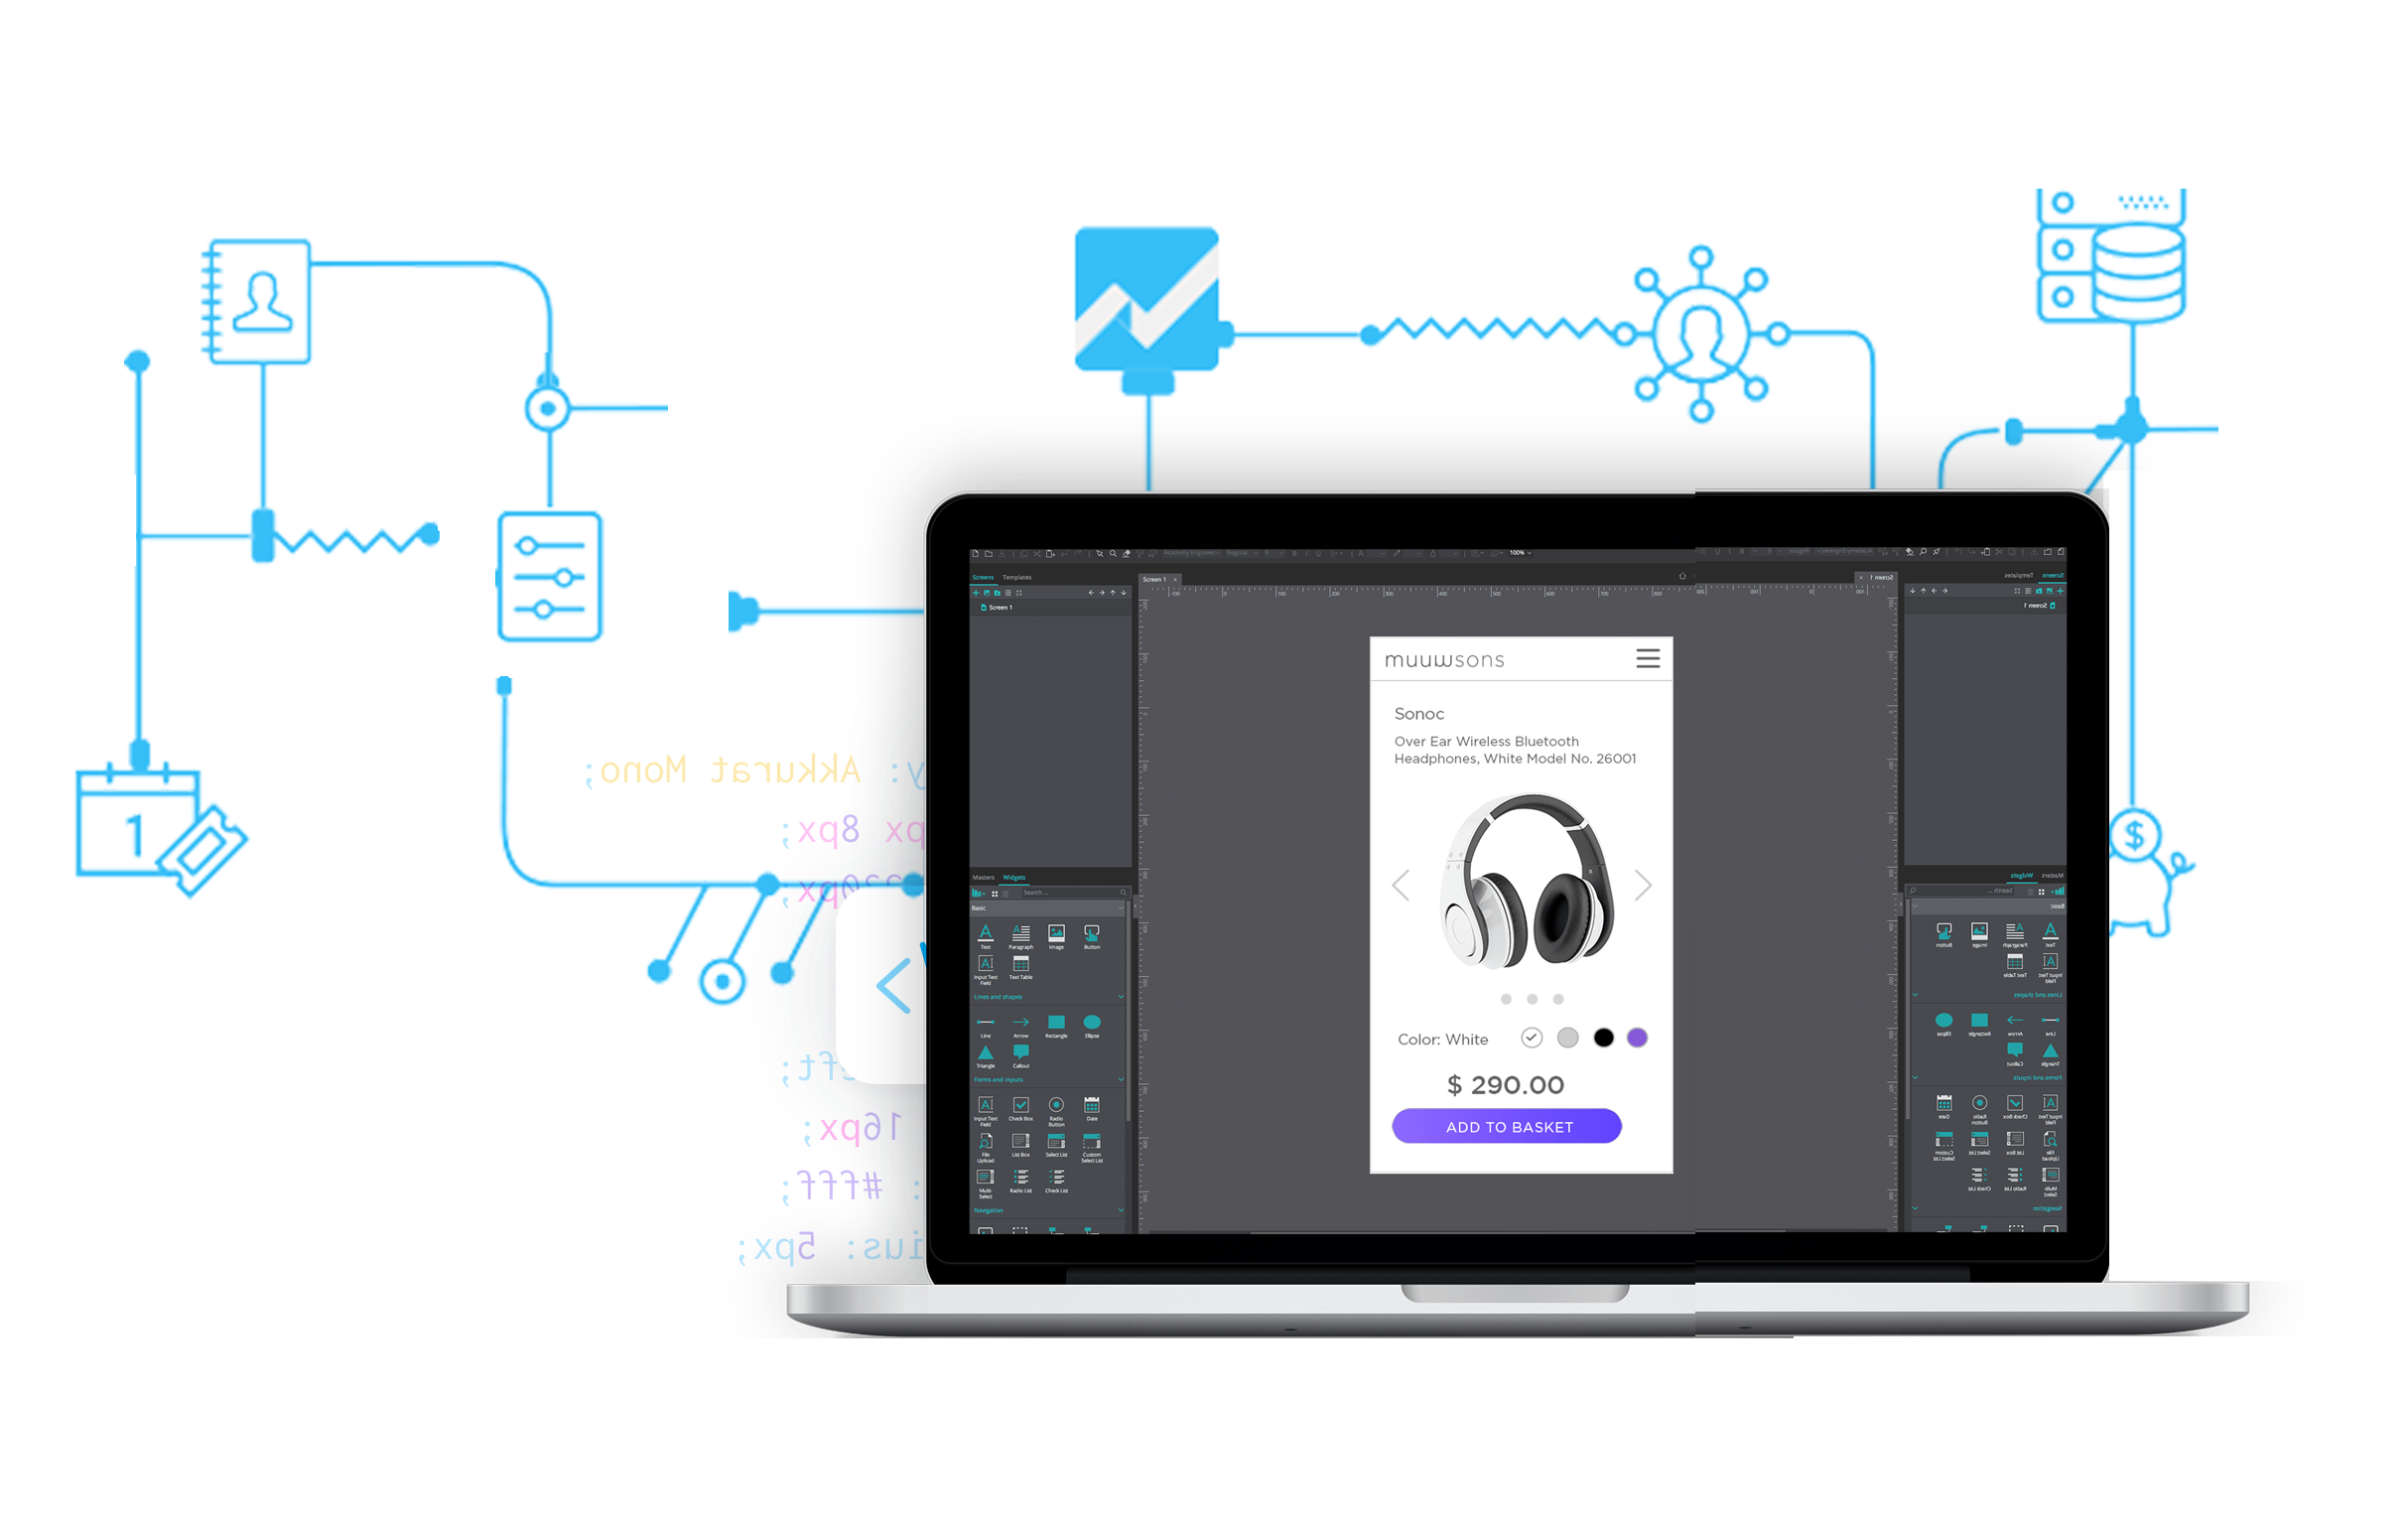 Extend the functionality of Justinmind prototyping tool with our API SDK